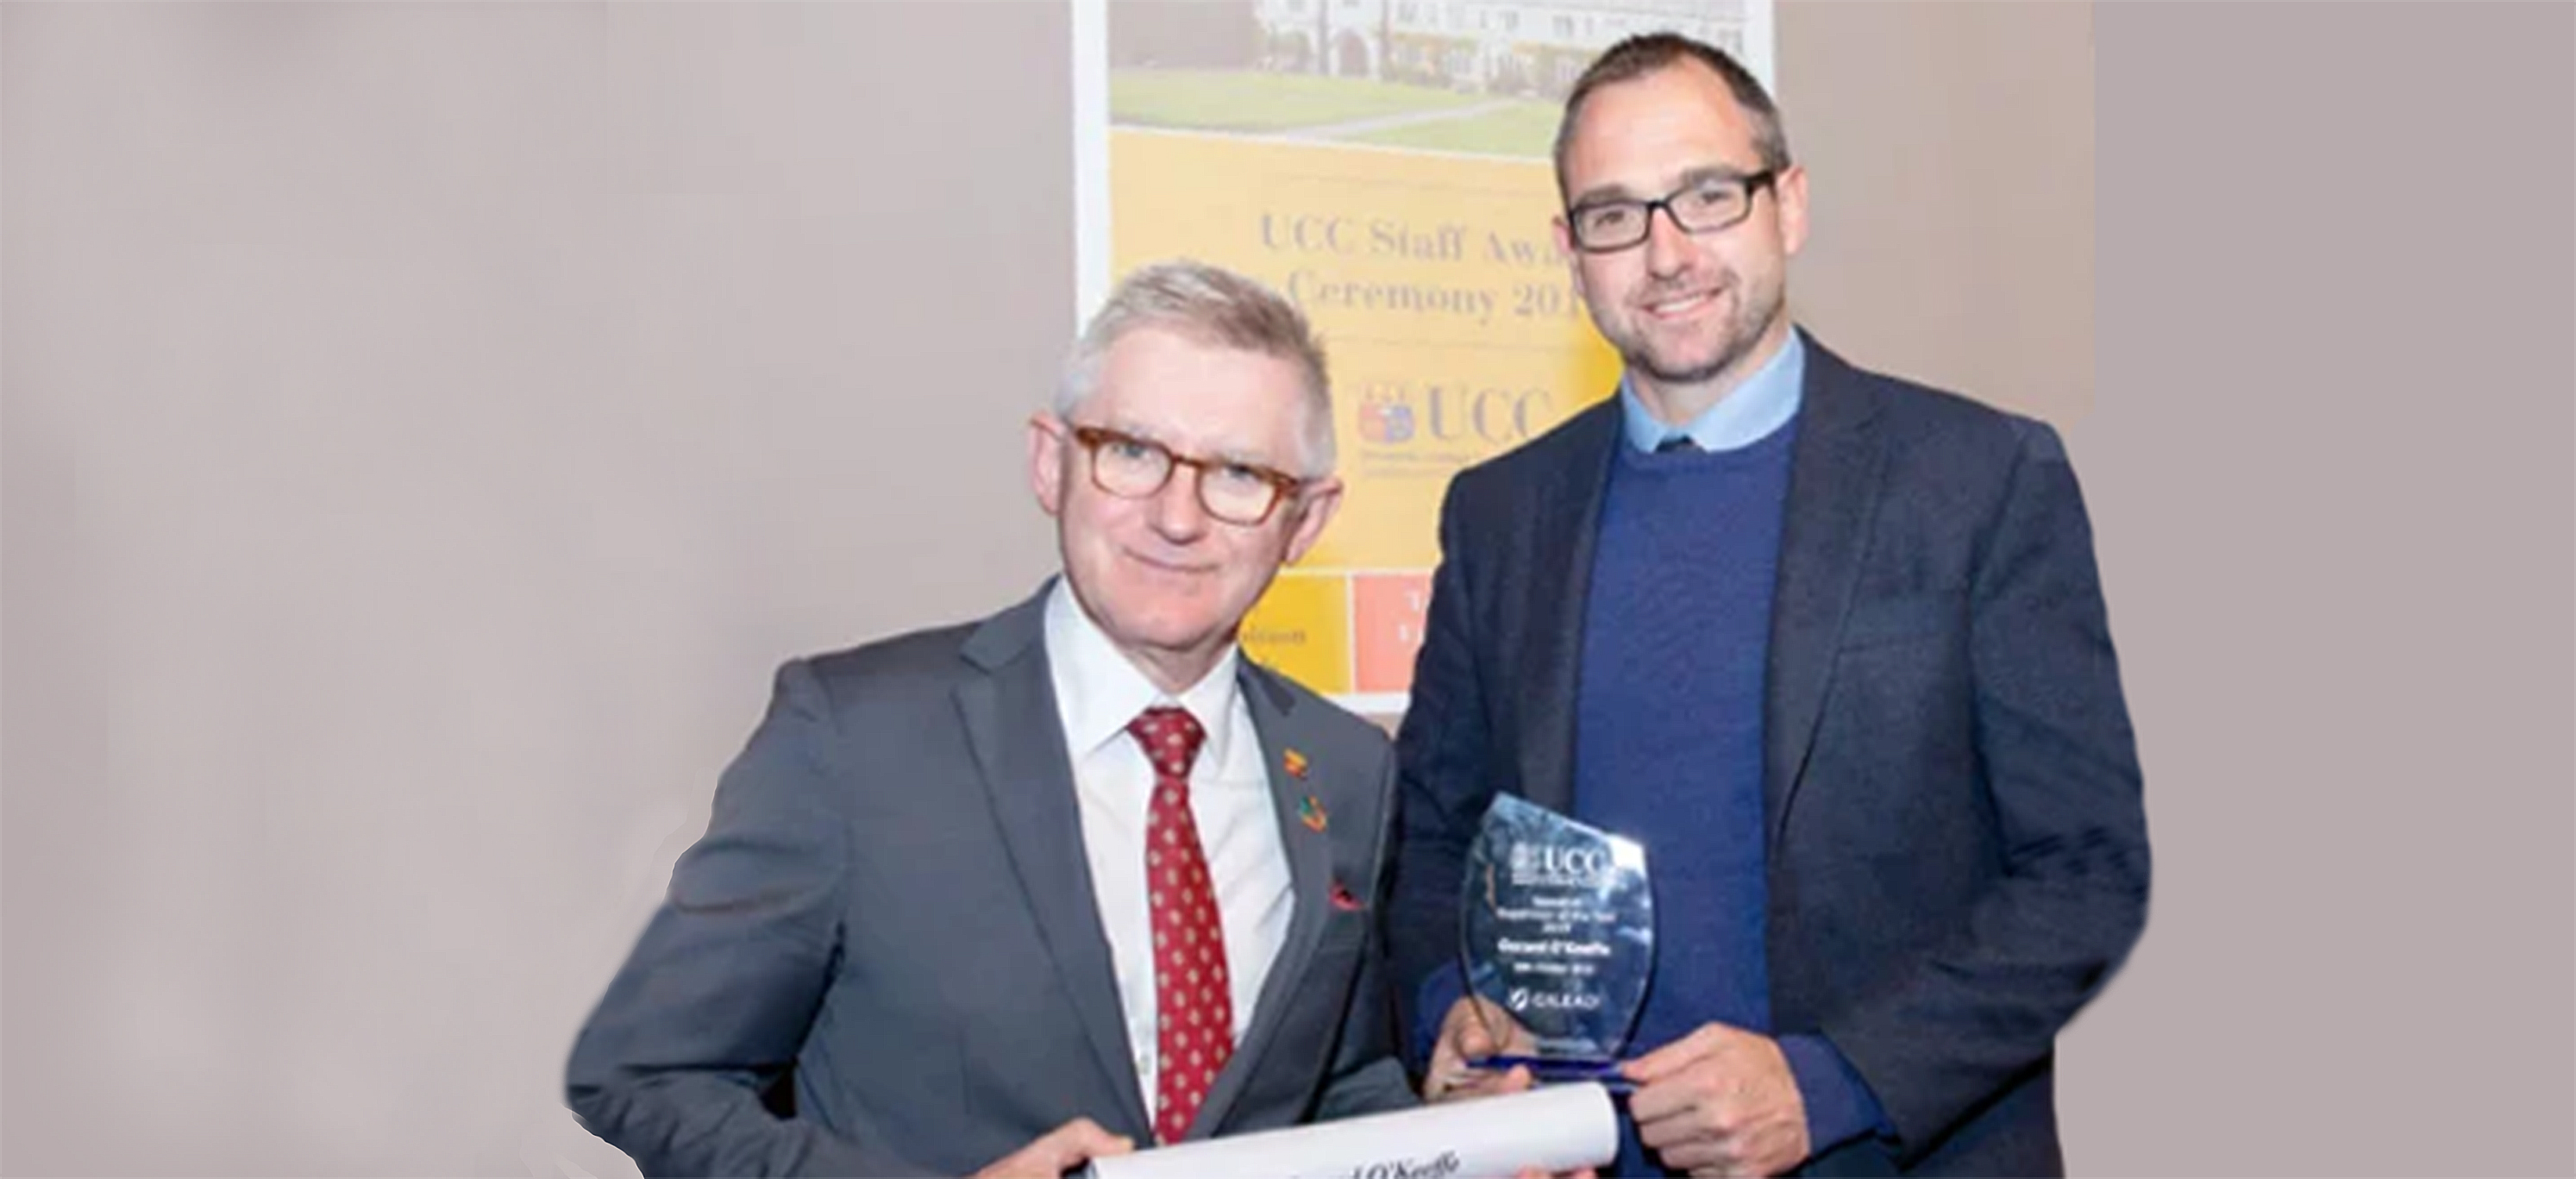 Congratulations to Ger O'Keeffe on the award of UCC Research Supervisor of the Year 2019